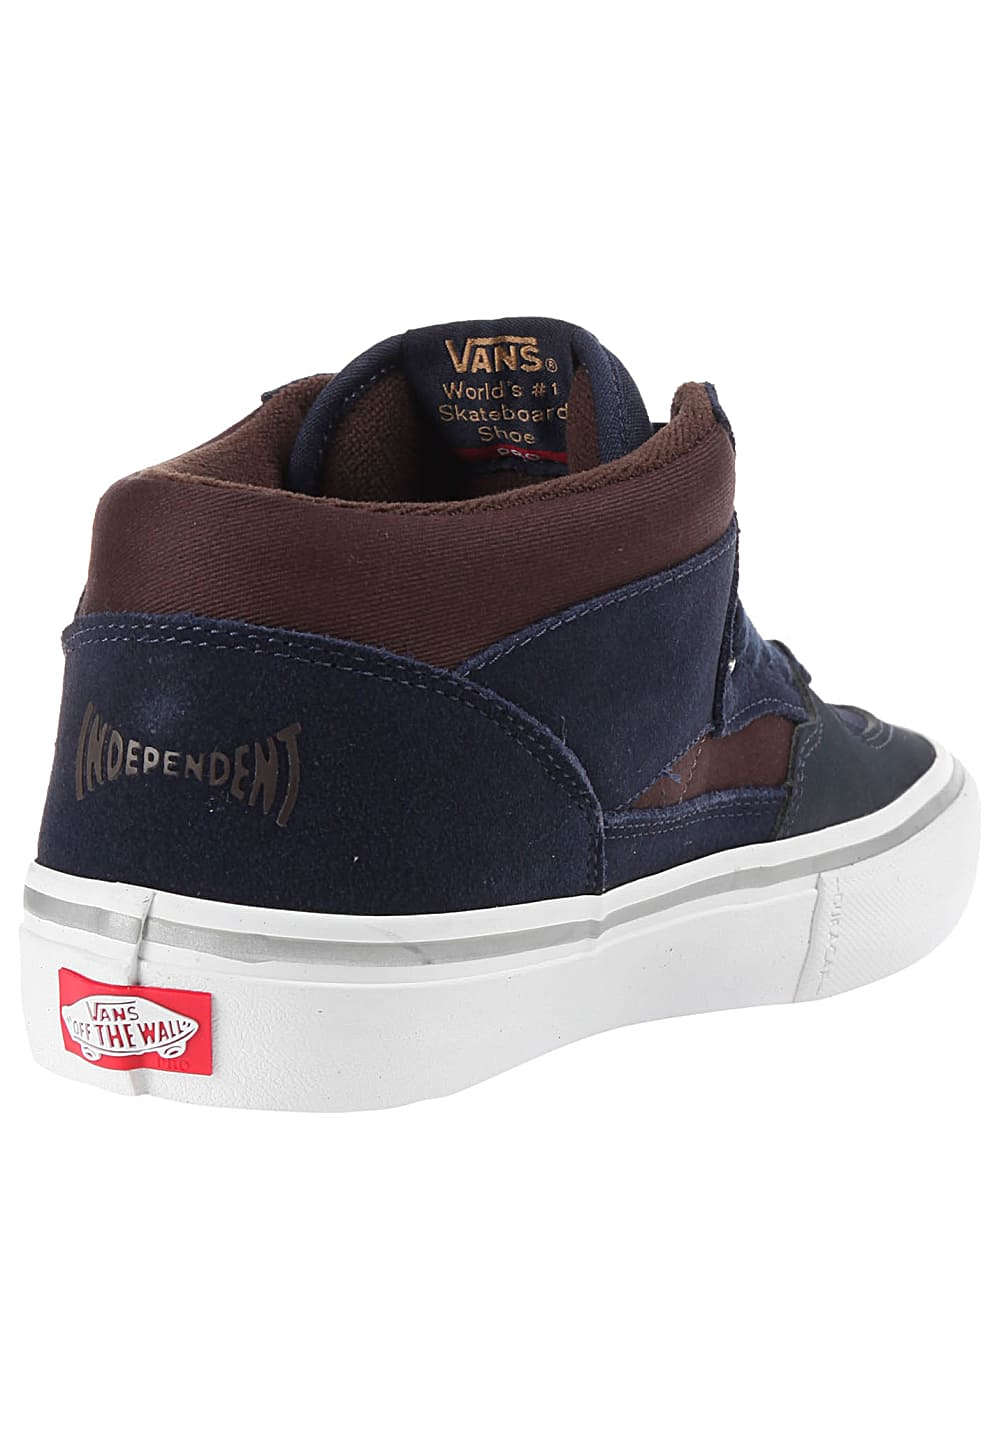 503361a2d2 Next. -20%. This product is currently out of stock. Vans. Half Cab Pro -  Sneakers for Men